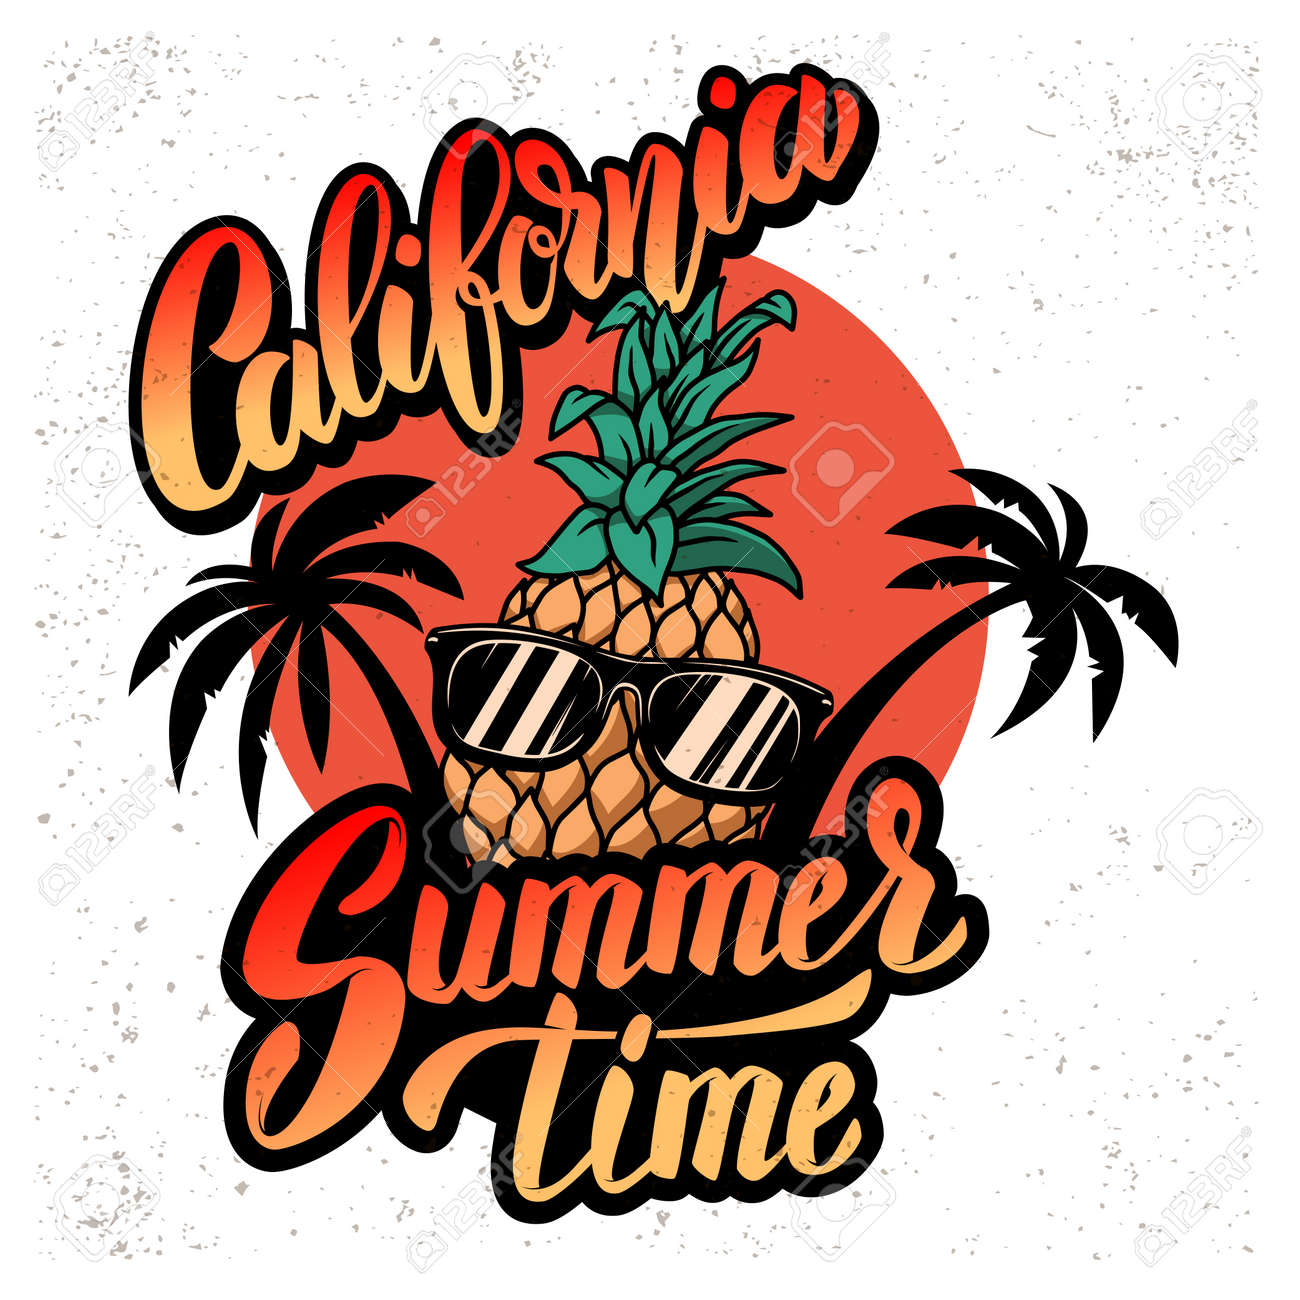 California summer time. Emblem template with pineapple, waves and palms. Design element for poster, card, banner, sign, emblem. Vector illustration - 170554436